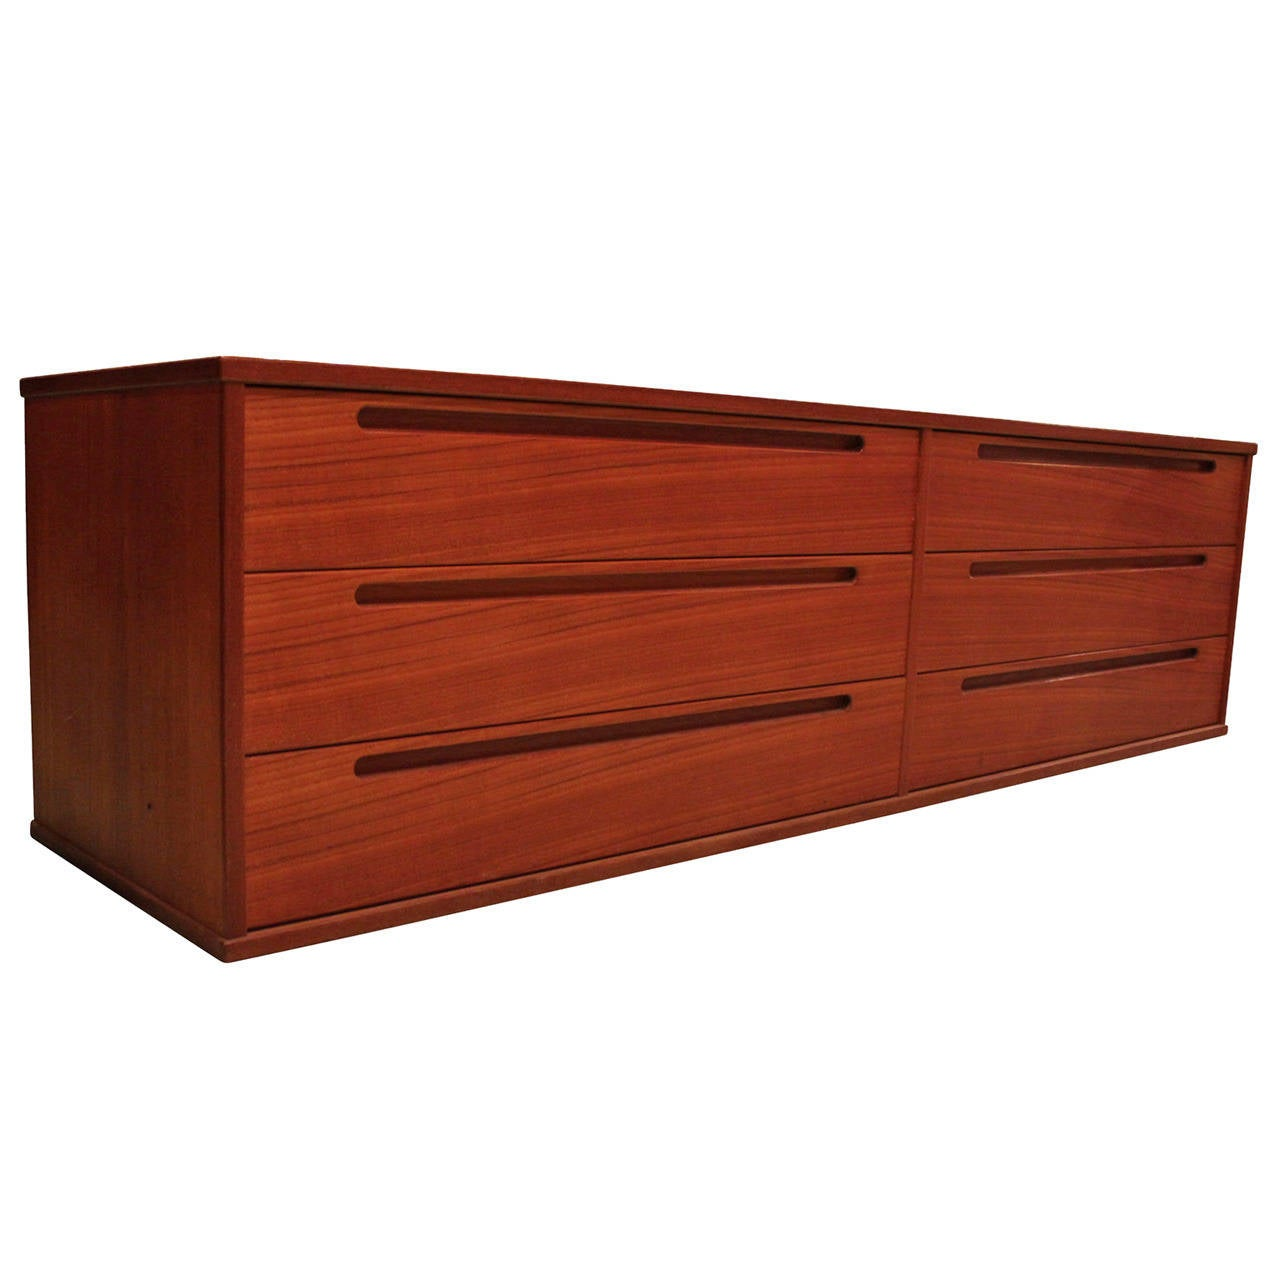 Mid Century Modern Long And Low Danish Teak Dresser With Six Drawers 1960s 1